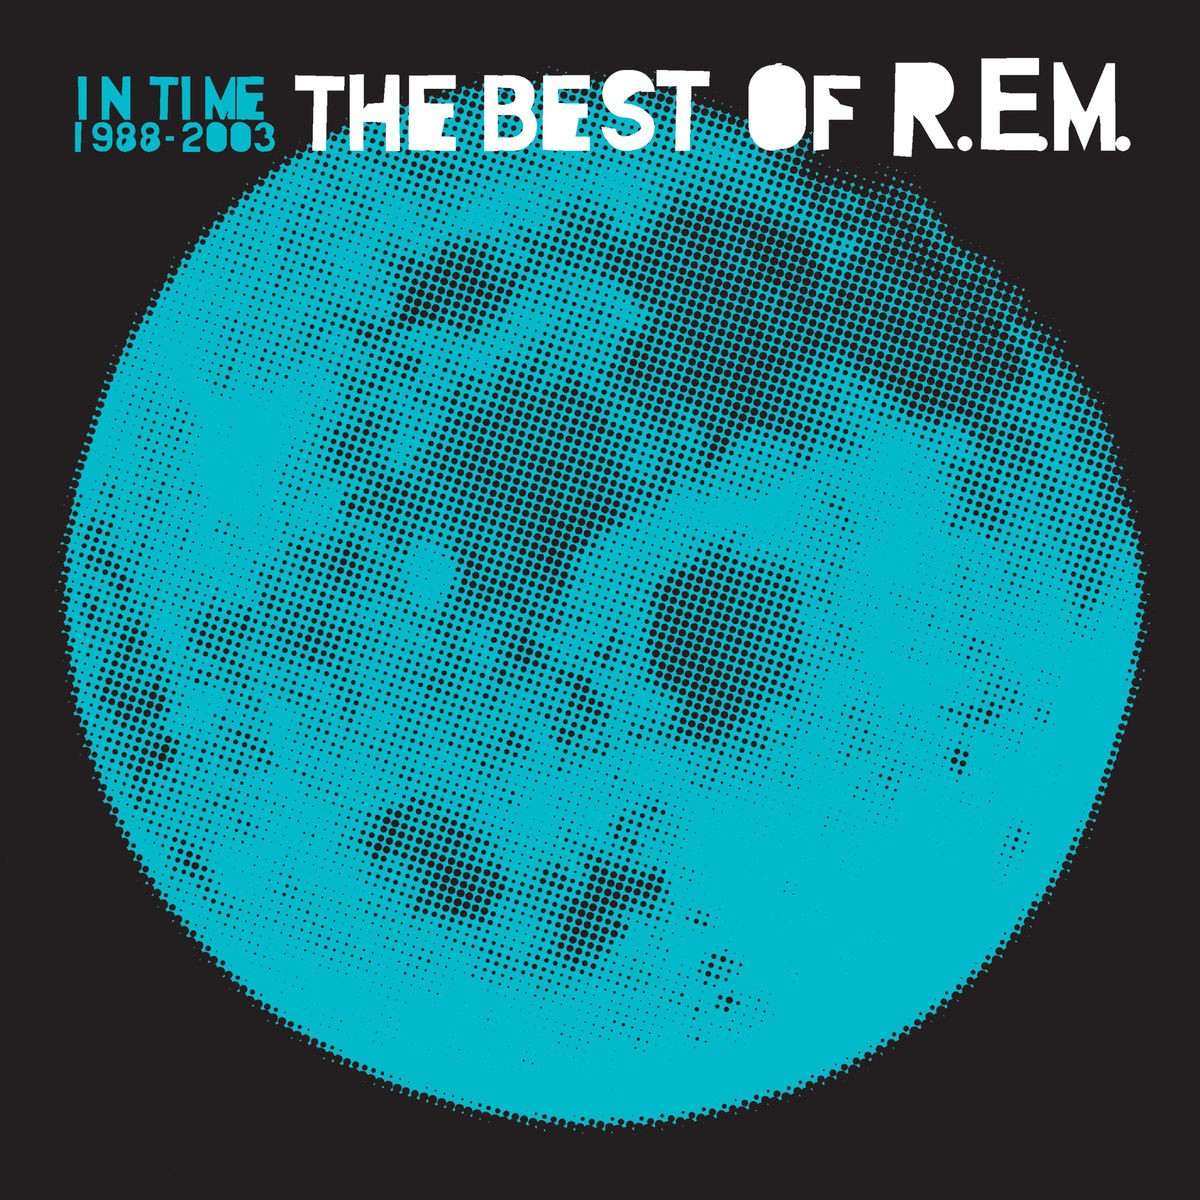 R.E.M. - In Time: The Best of R.E.M. 1988-2003 VINYL - 088807208482